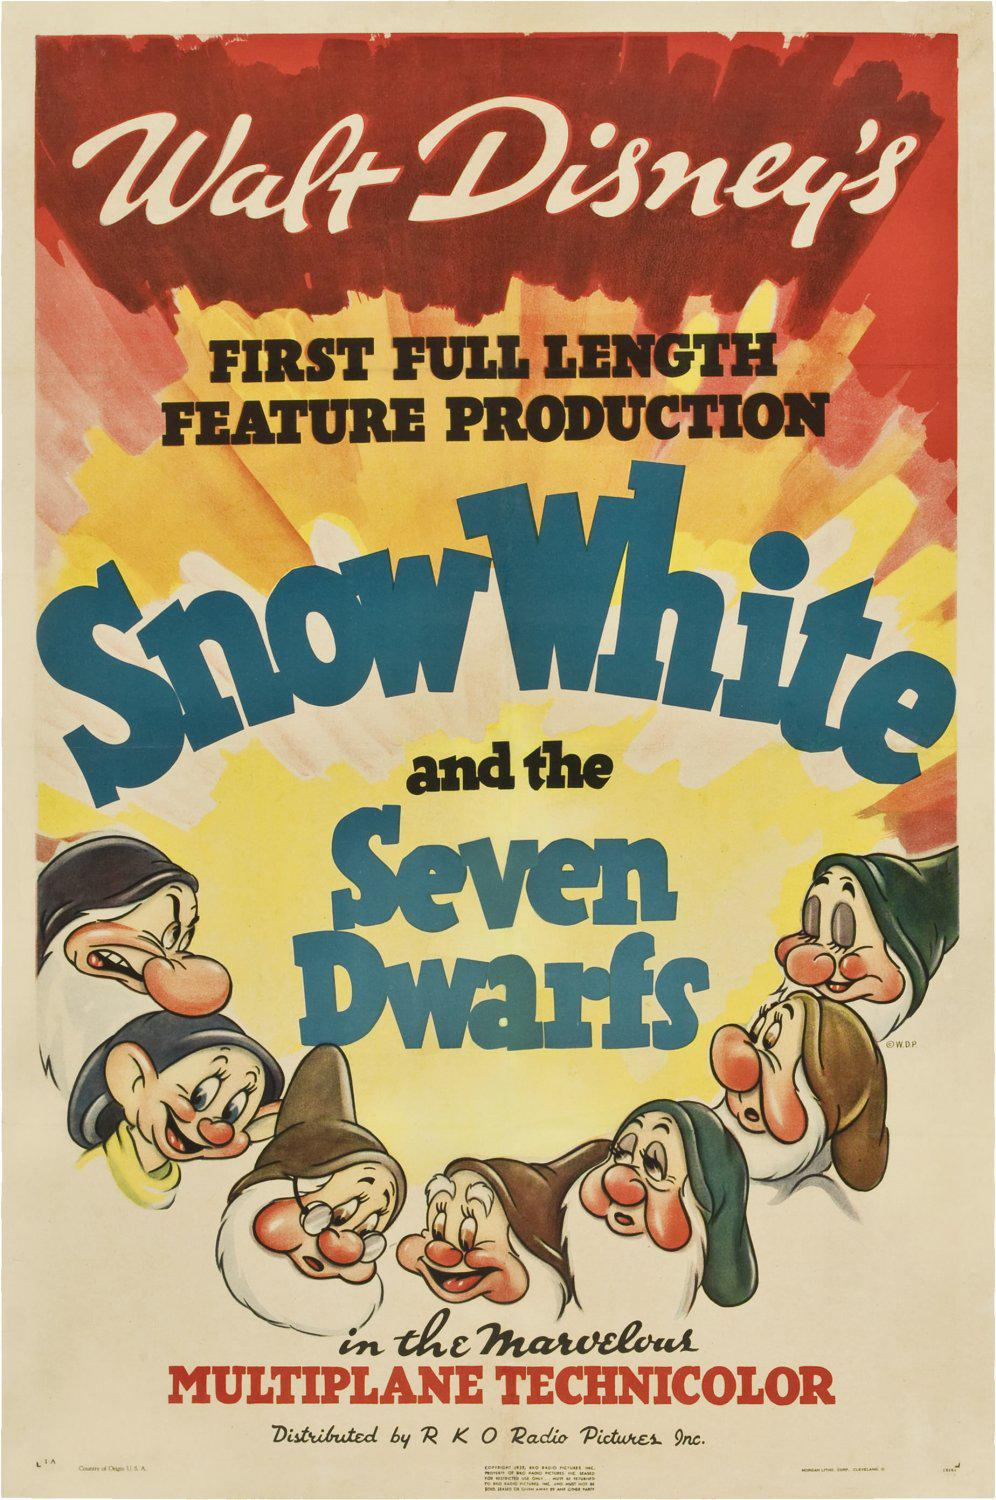 Biancaneve e i 7 Nani - Snow White and the Seven Dwarfs - Blancanieves - Blanche-Neige - Schneewittchen - Disney - old animated movie poster